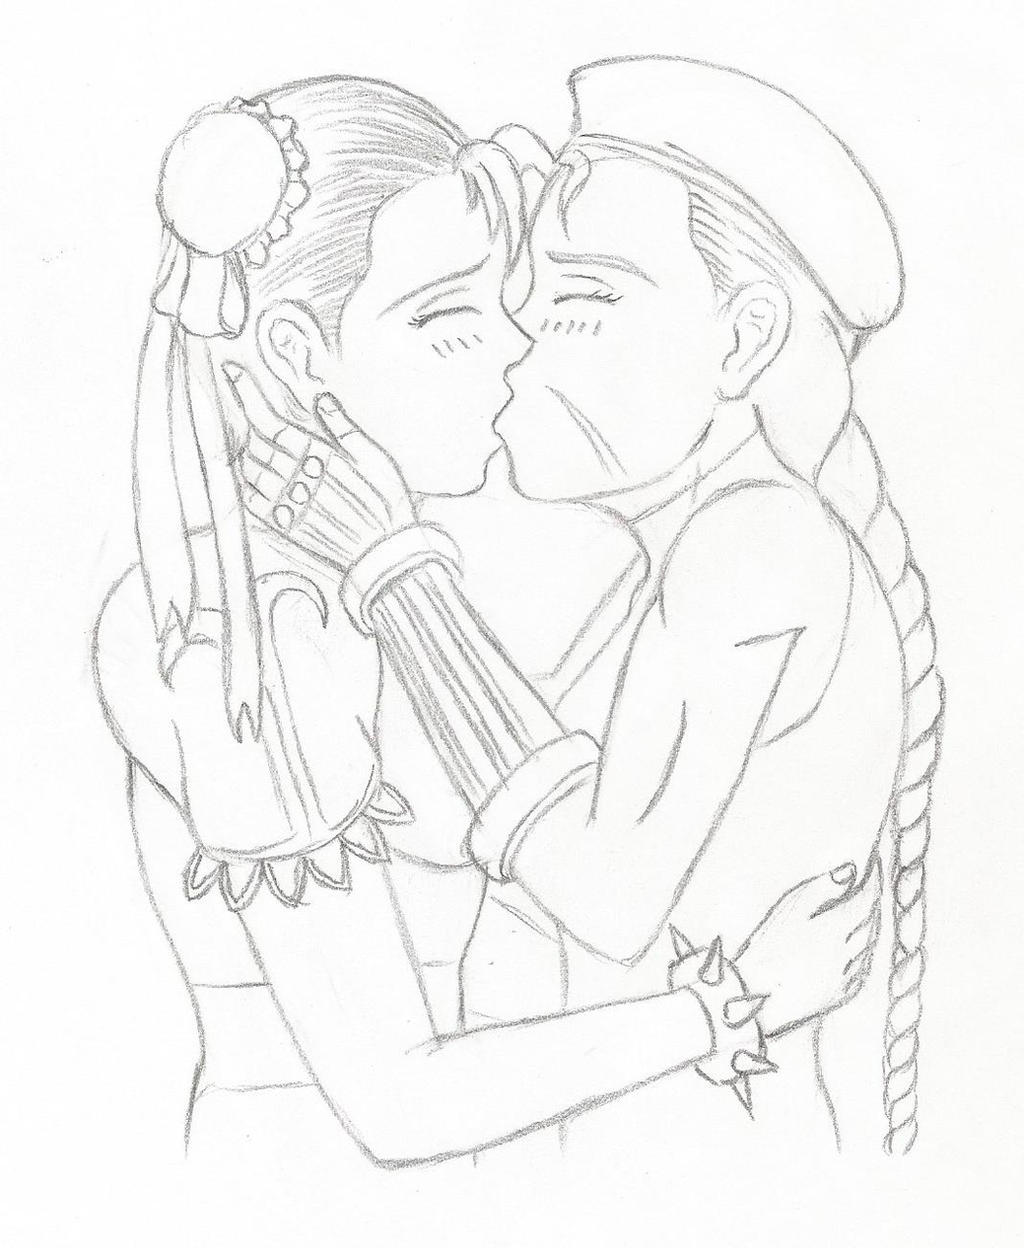 Cammy and Chun kiss - sketch by JB4C